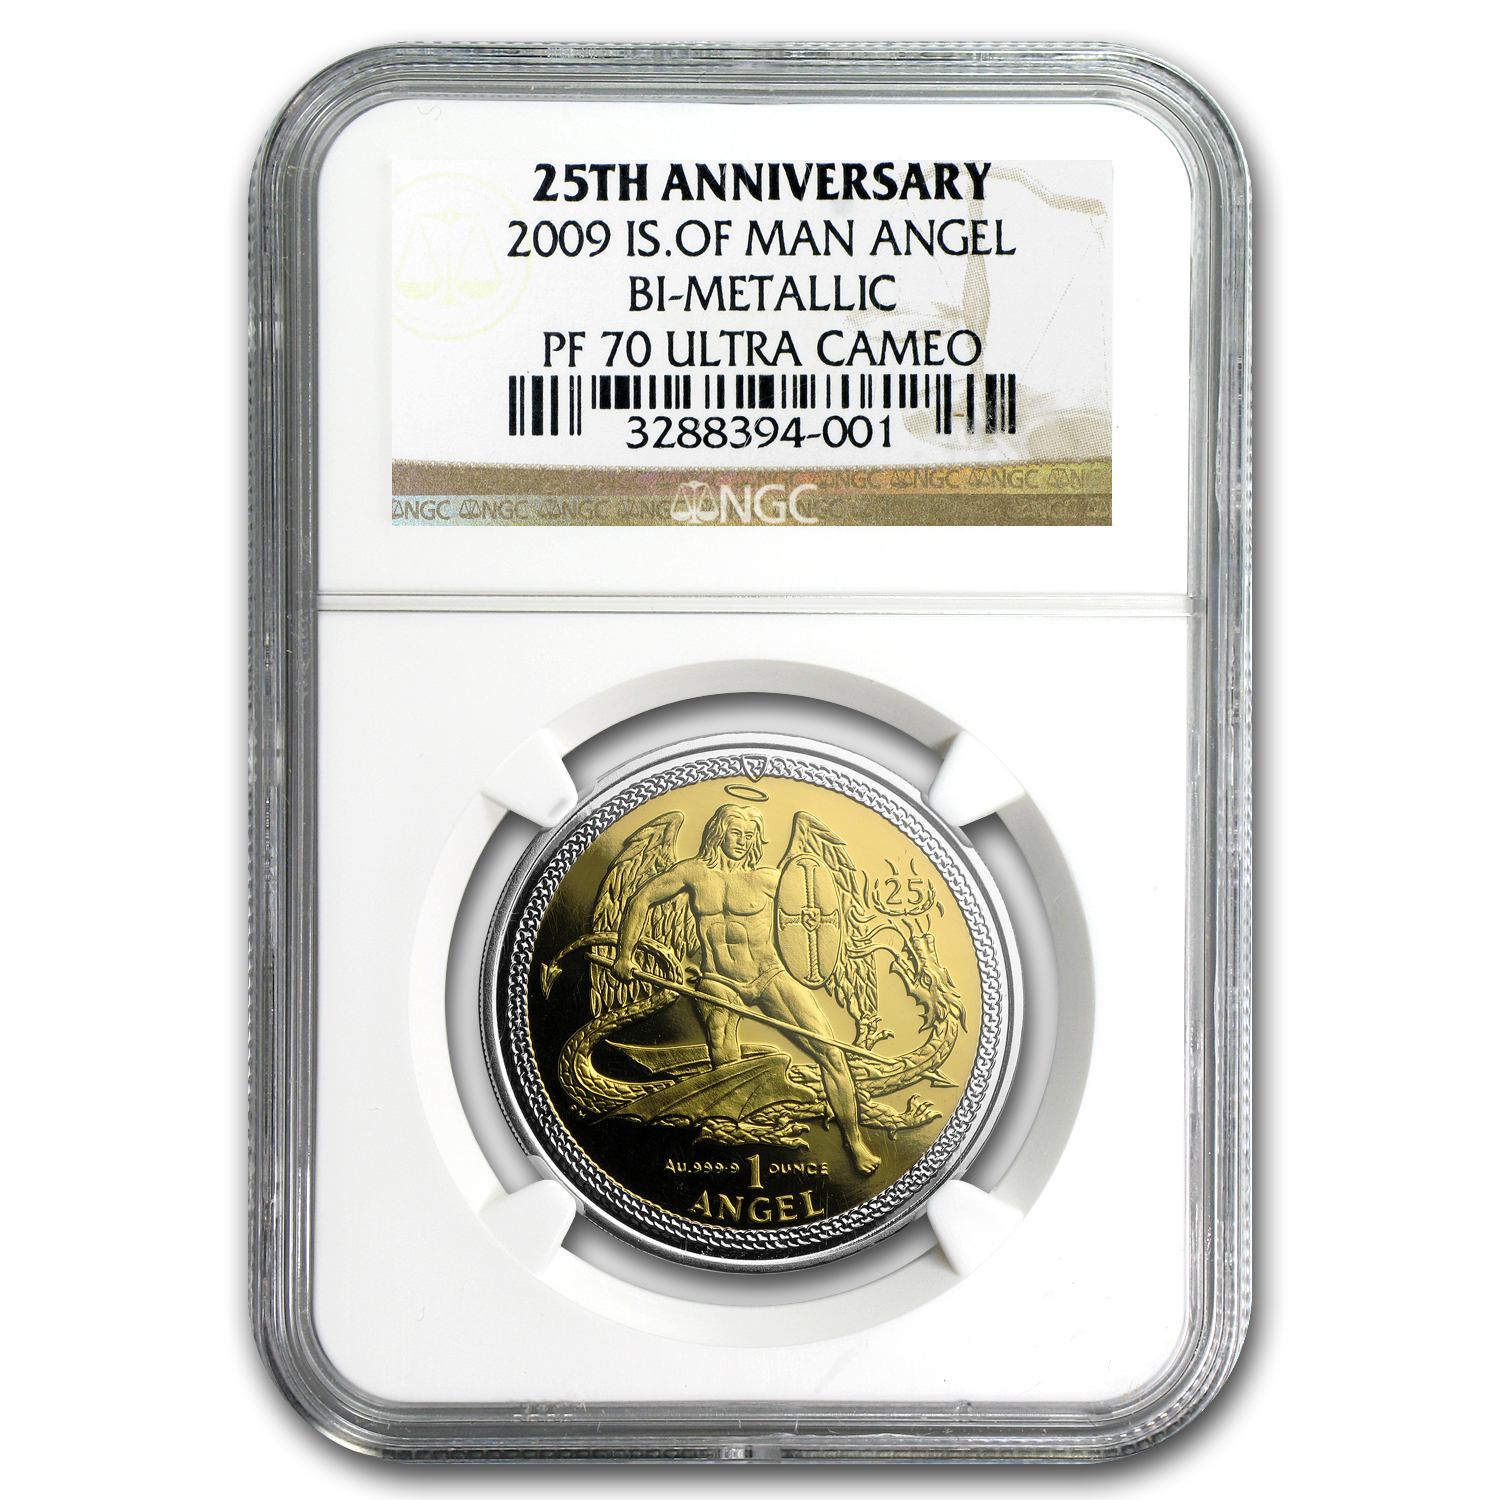 2009 Isle of Man Bi-Metallic 1 oz Gold Angel PF-70 NGC (25th Ann)